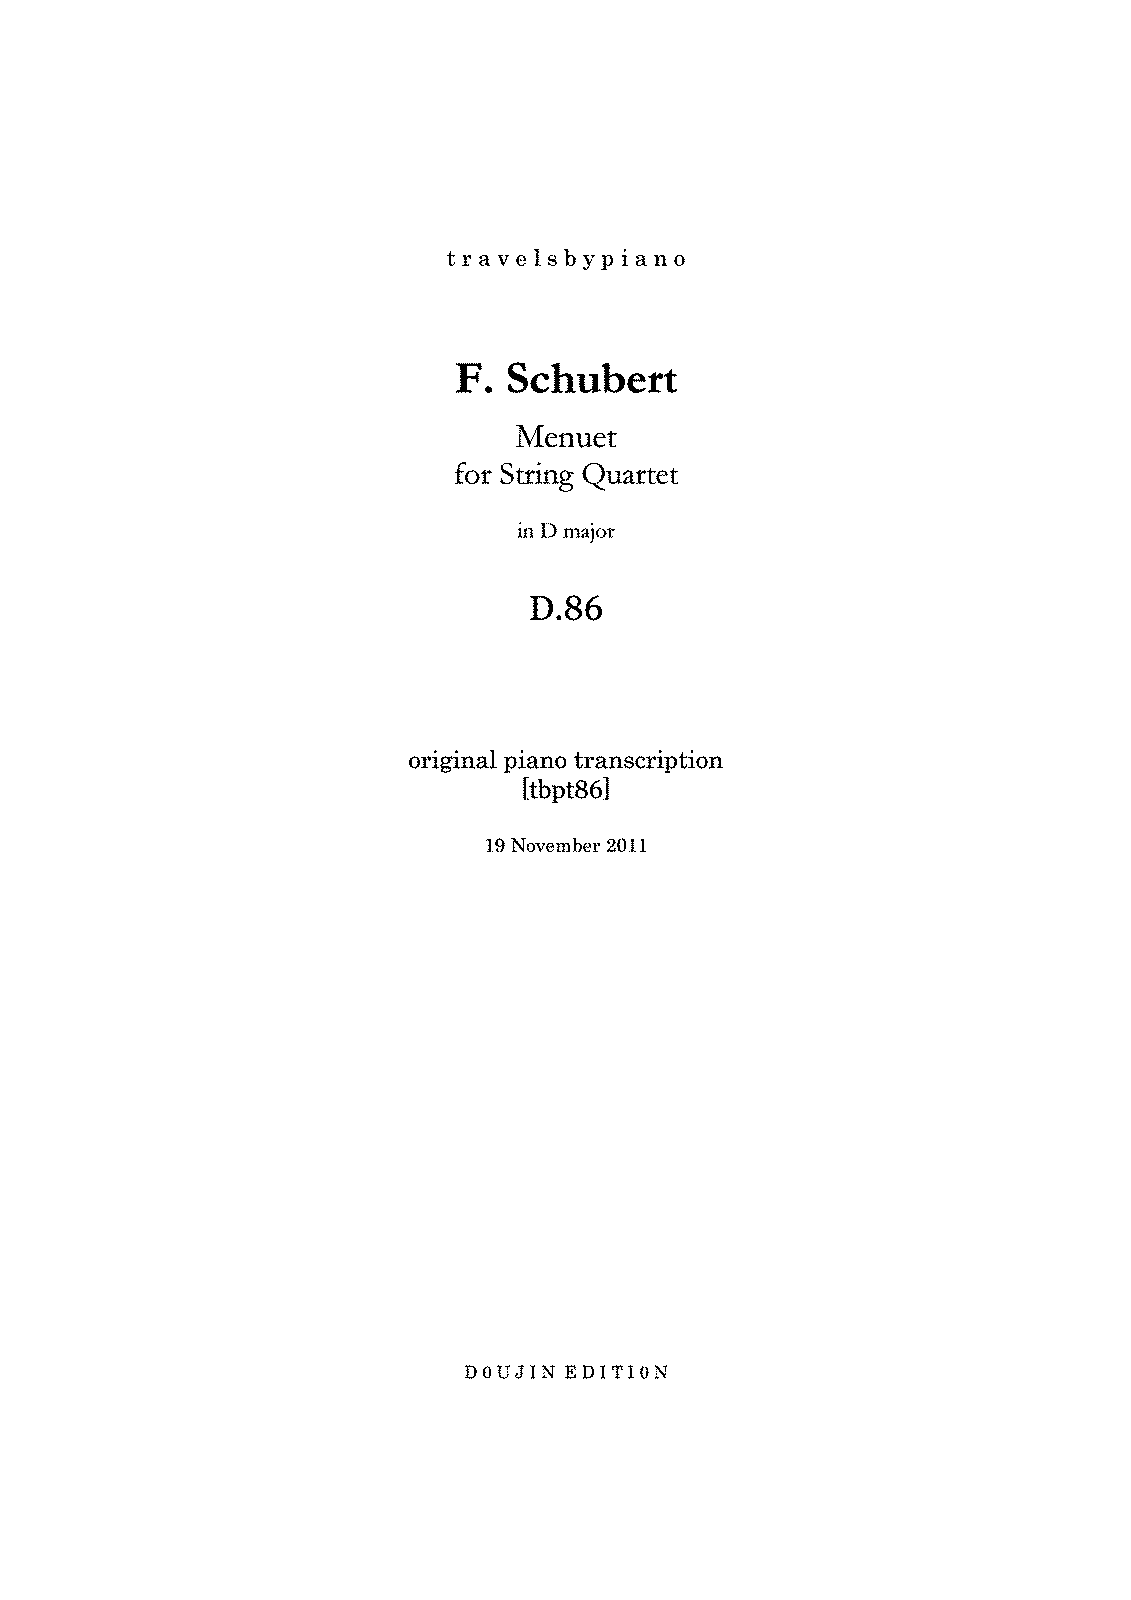 PMLP40468--travelsbypiano- tbpt86 F.Schubert Menuet for String Quartet in D D.86 piano transcription -D5D3EFE8-.pdf